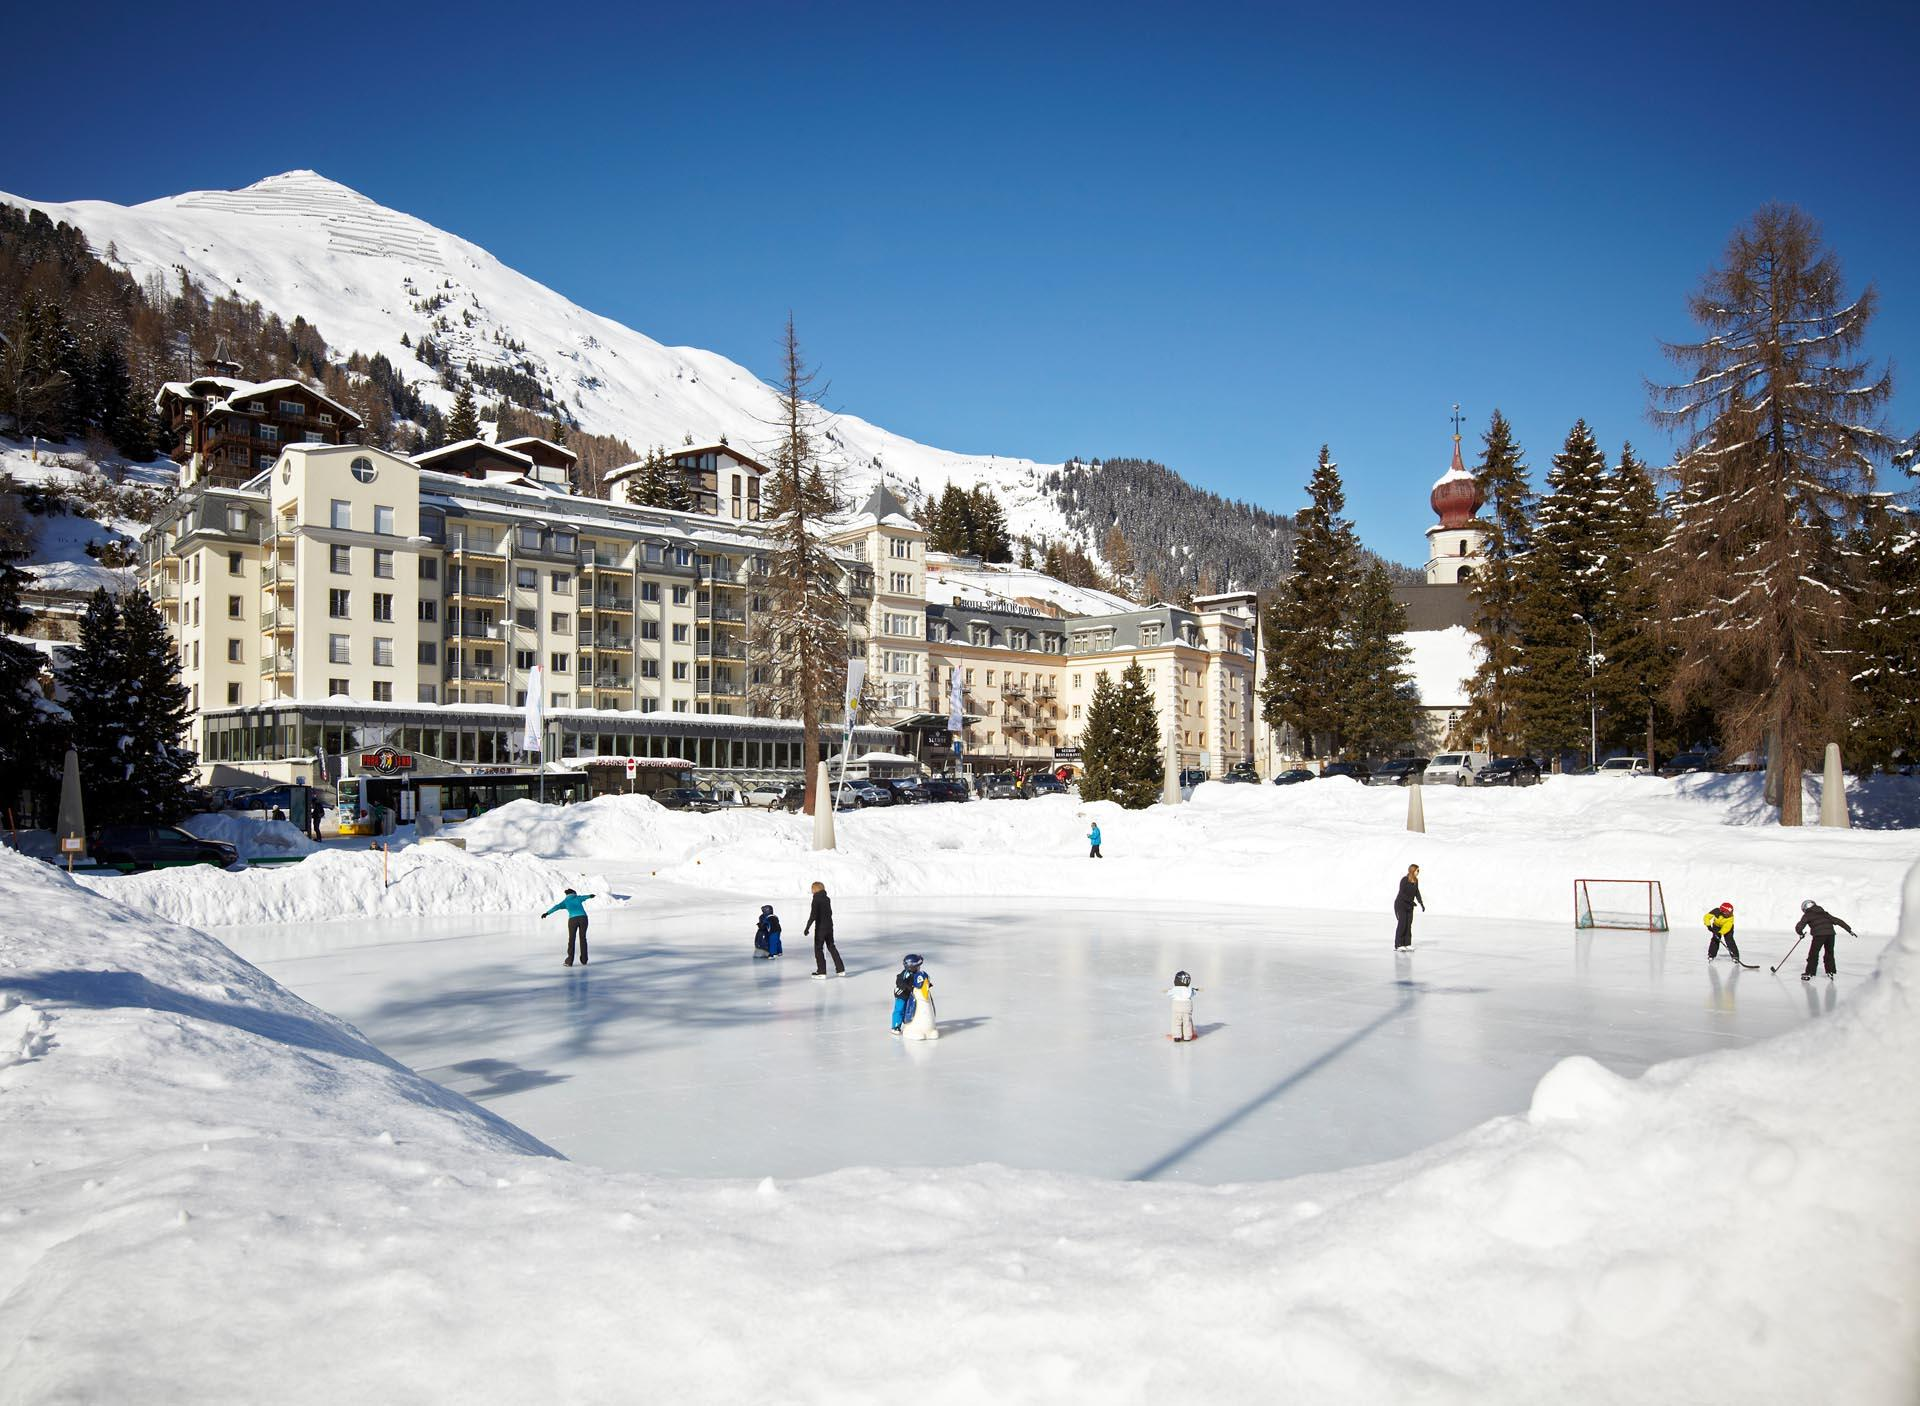 people skating on the frozen lake in front of the Precise Seehof